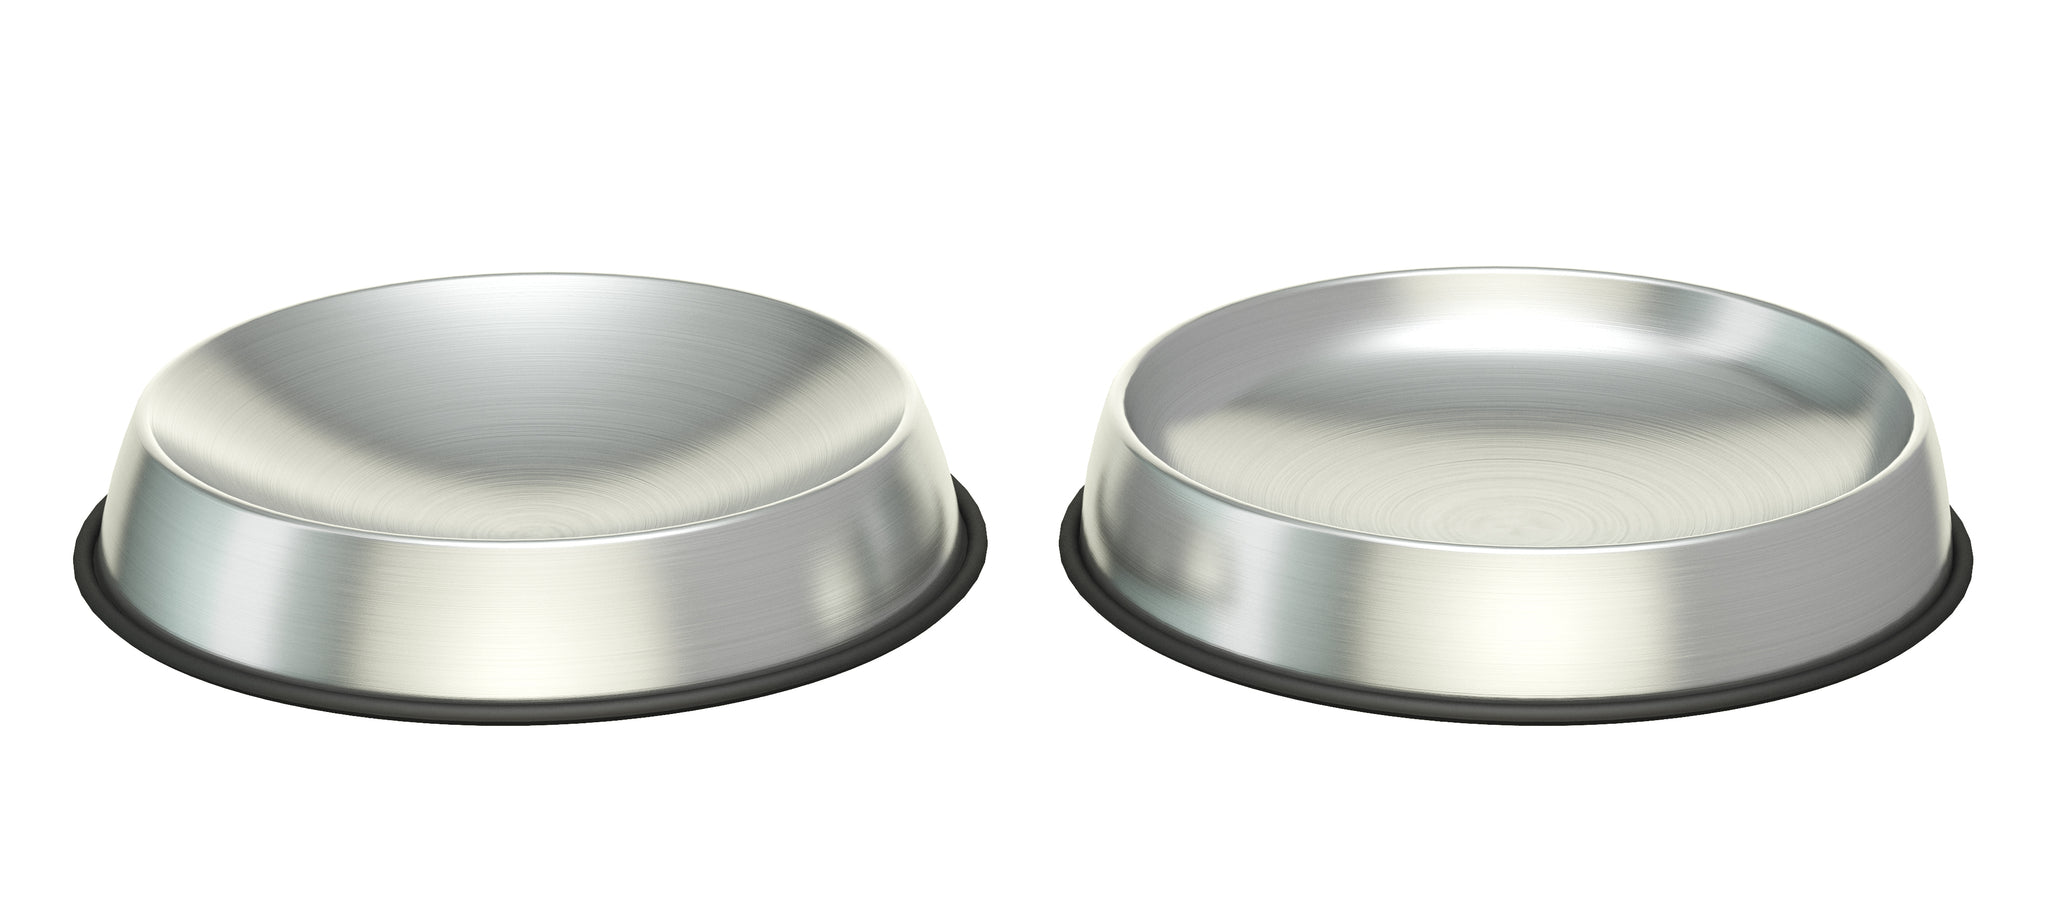 Food & Water Bowl Set